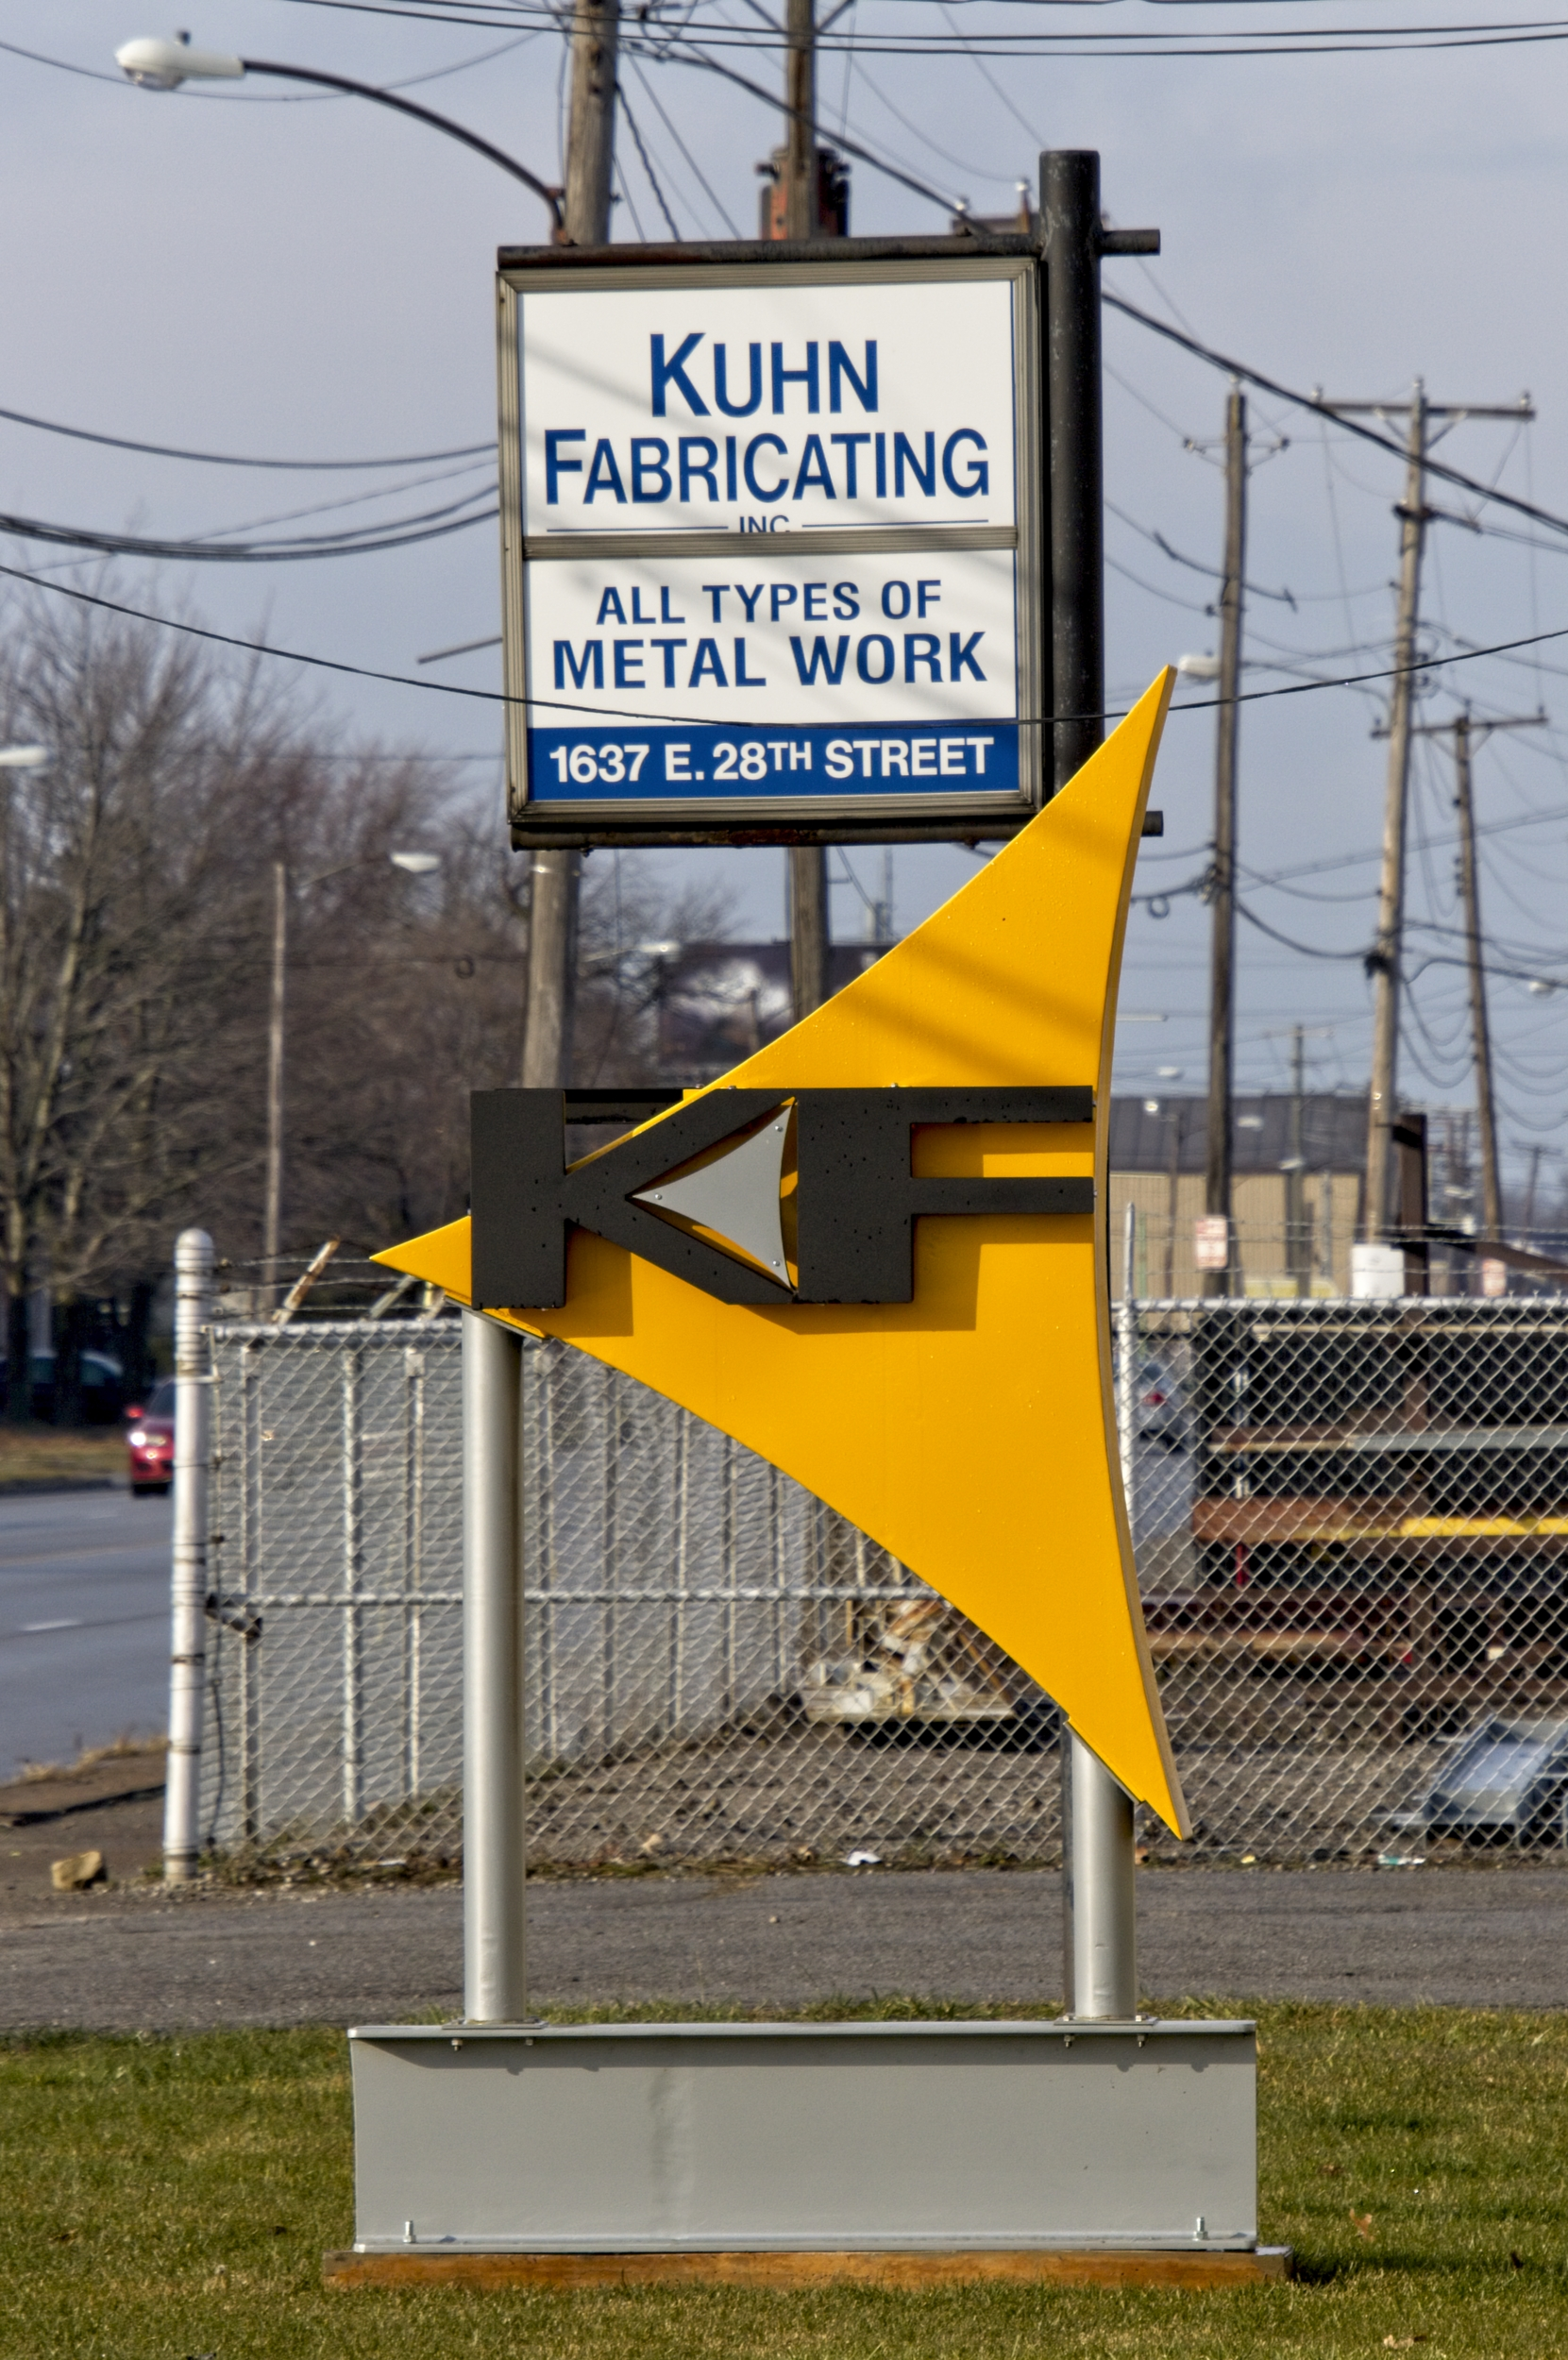 2 signs for a business. One is square and has the name of the business, what they do, and the address in blue letters on a white background. The other sign is the company logo: the letters K and F in black with a small gray triangular accent between them, all on a yellow triangular background. This is mounted to two metal posts which are mounted to the top of a section of steel beam.